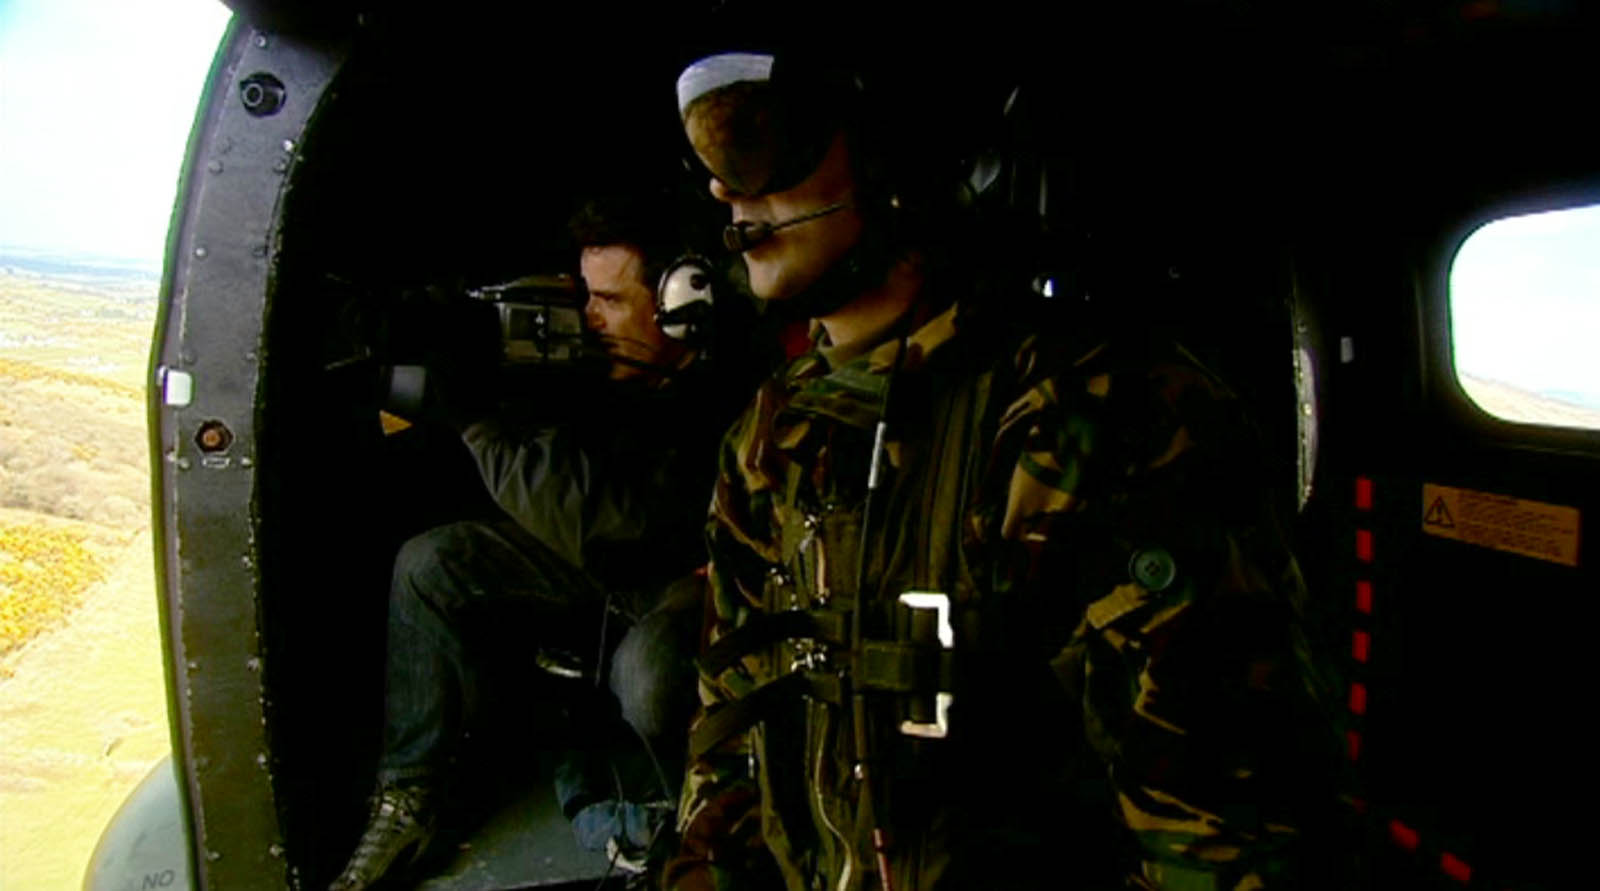 Video production for BBC Worldwide of Magnum photographer Donovan Wylie - Donovan with helicopter crew British army chinook helicopter flying above South Armagh filmed by a director at Bout Yeh video production Belfast, Northern Ireland